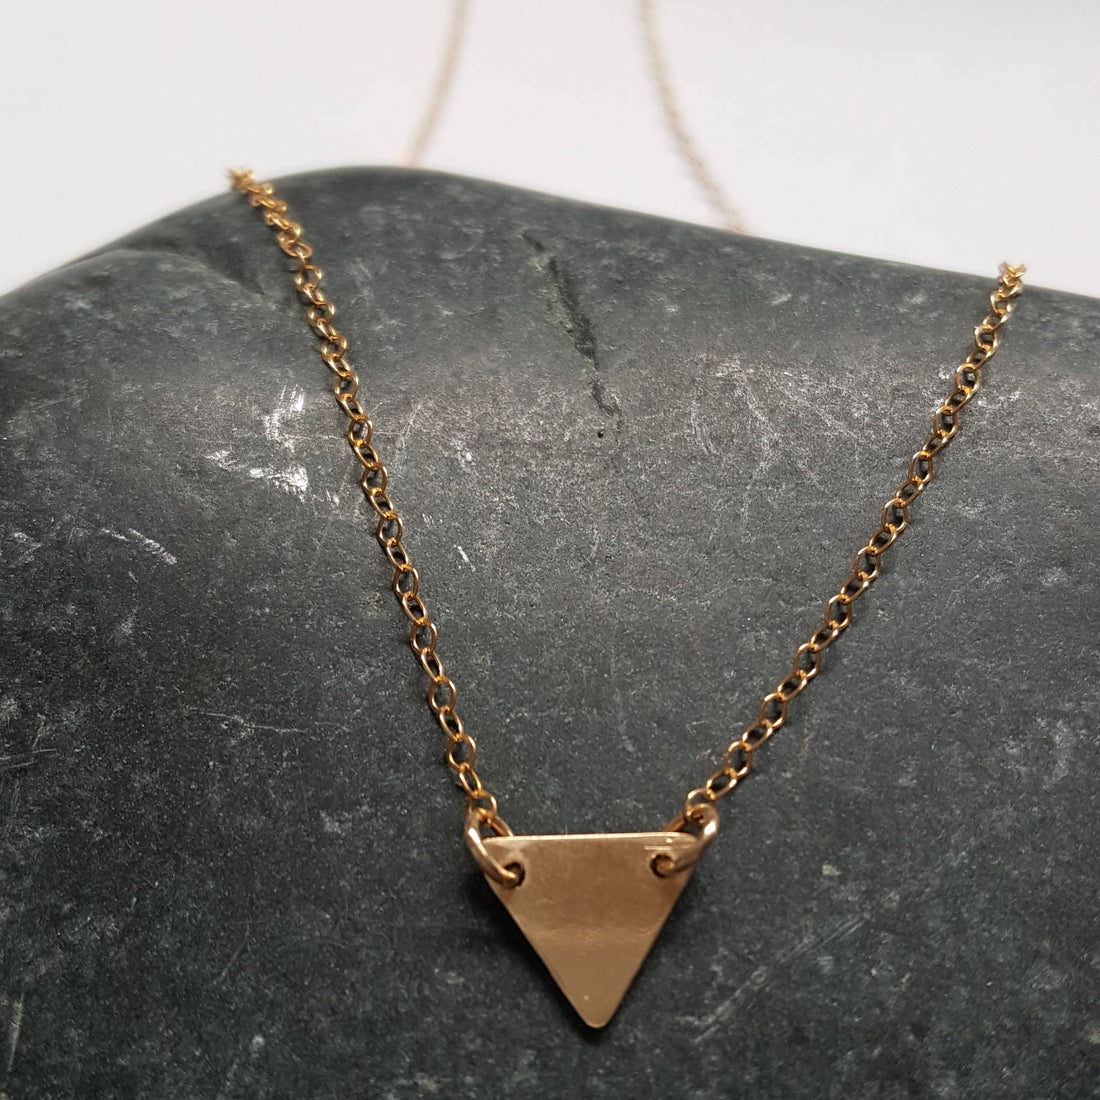 https://shopthemakers.com/products/tiny-gold-triangle-necklace